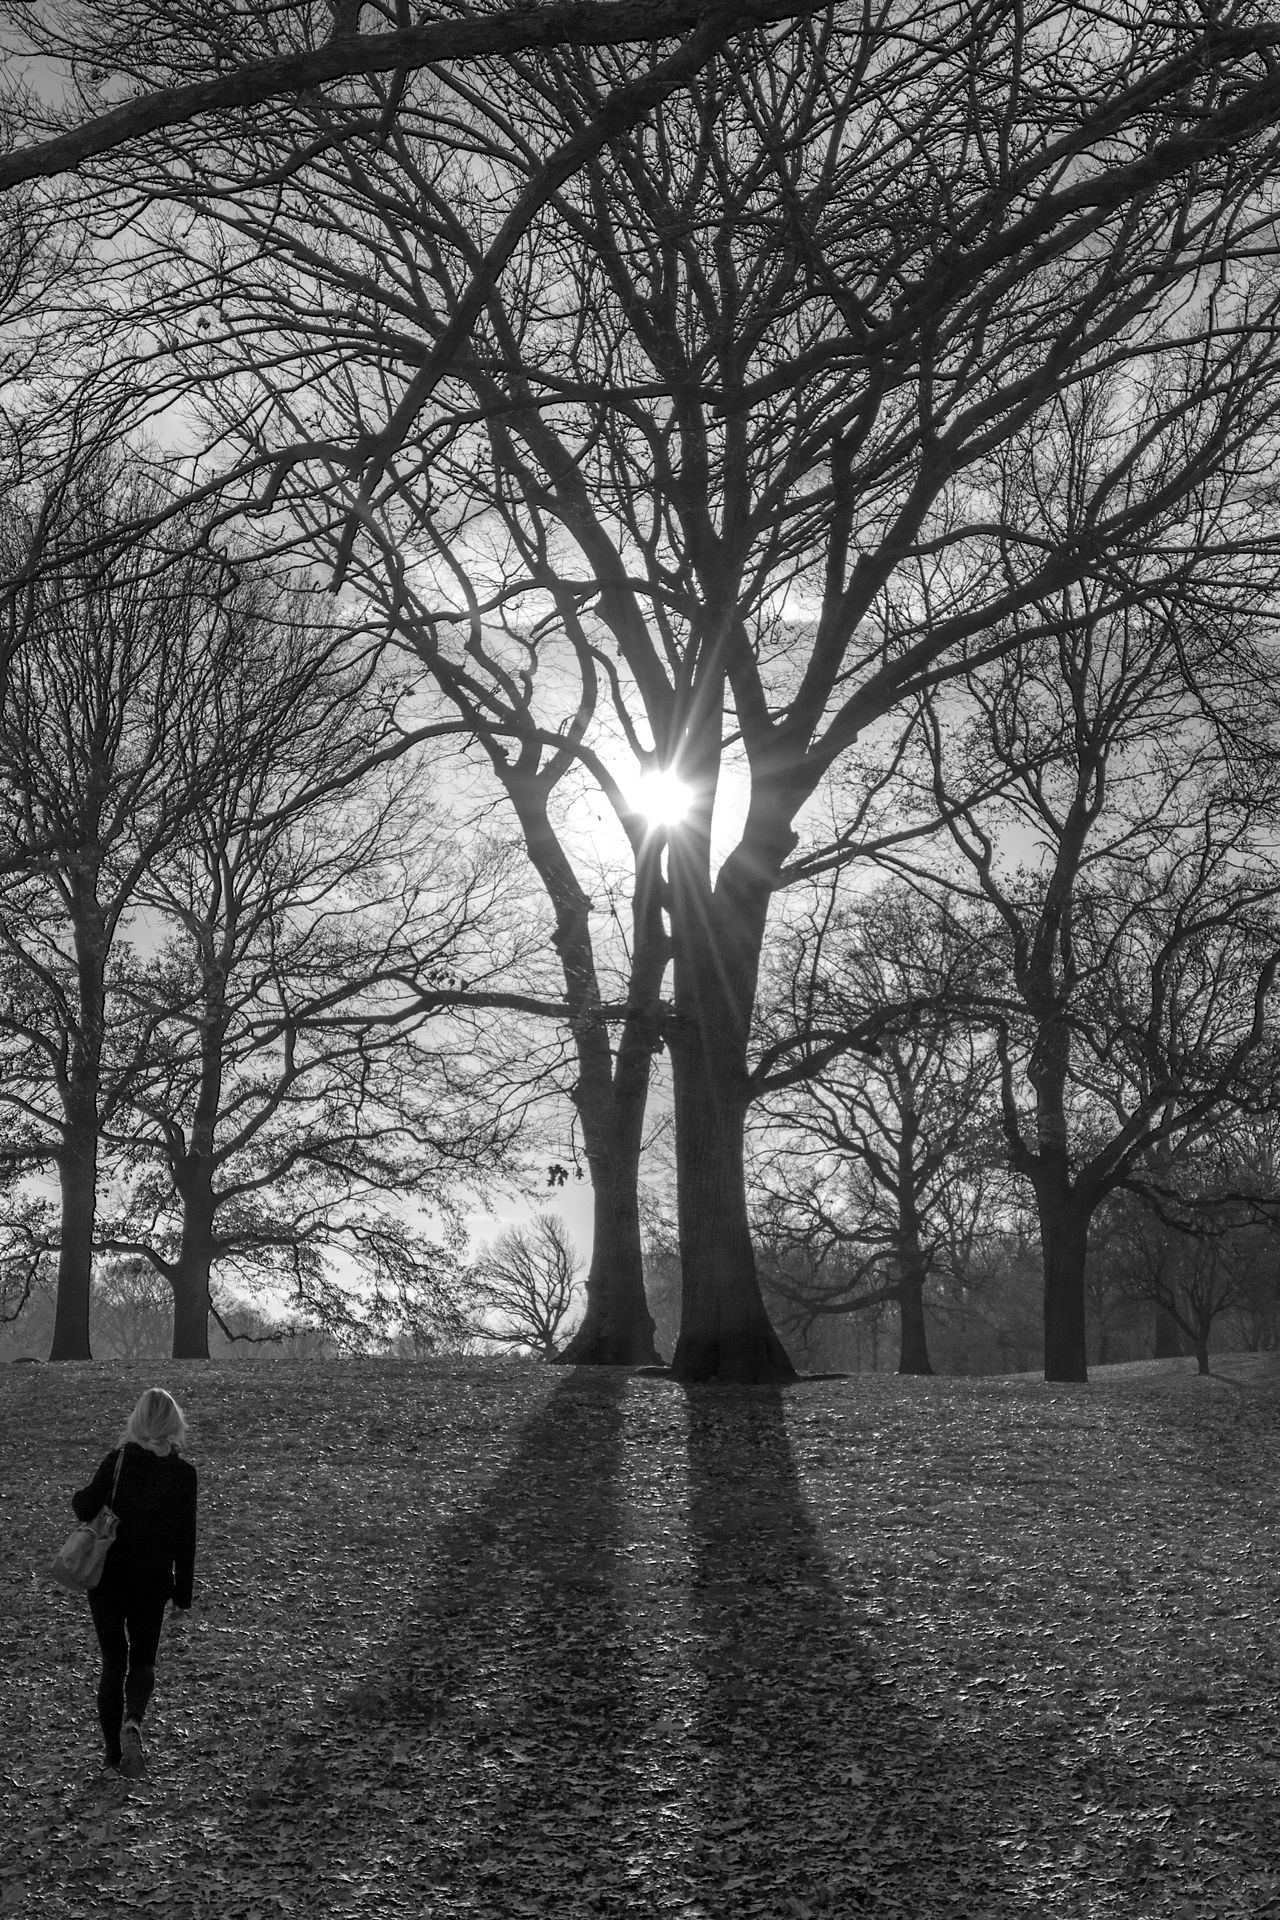 Beauty In Nature Black And White Black And White Photography Blackandwhite Branch Brooklyn Day Marchingoff Nature New York No People Outdoors Prospect Park Silhouette Sky Sun Sunbeam Sunlight Sunset Tranquil Scene Tranquility Tree